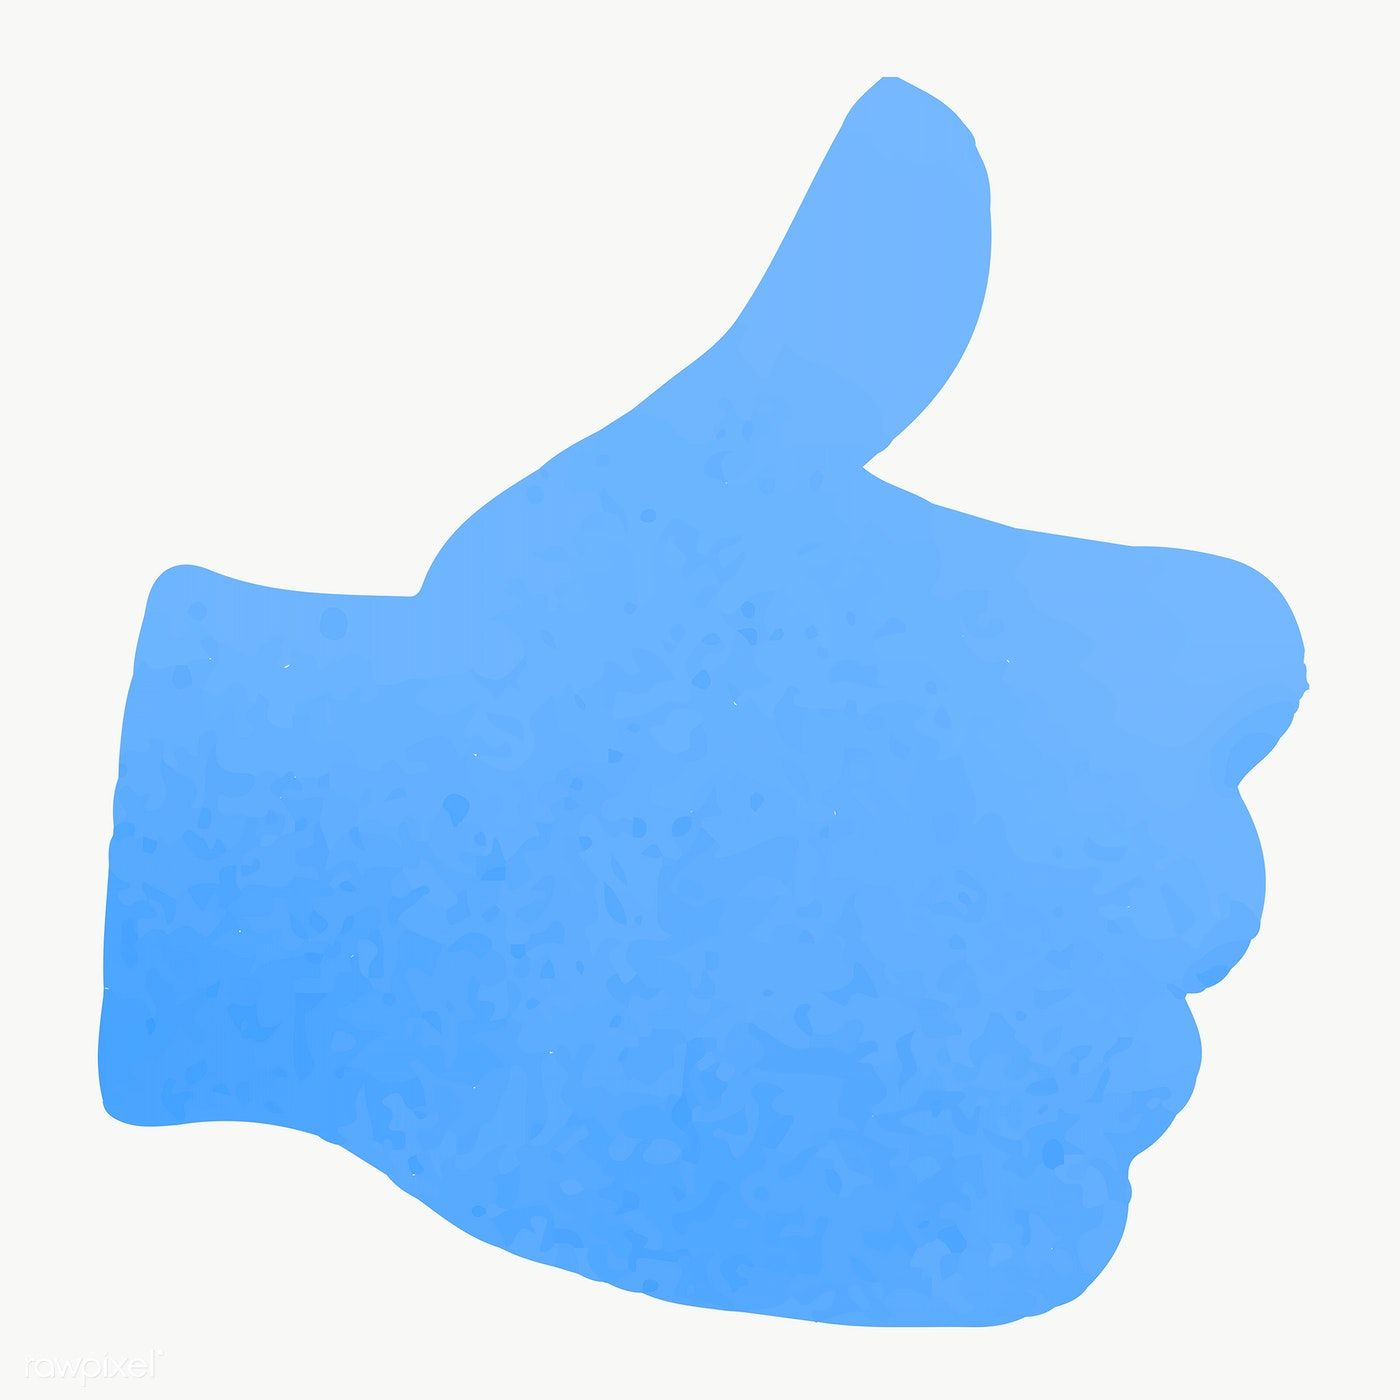 Thumbs Up Sign Social Ads Template Transparent Png Premium Image By Rawpixel Com Aum Thumbs Up Sign Social Ads Social Media Icons Vector